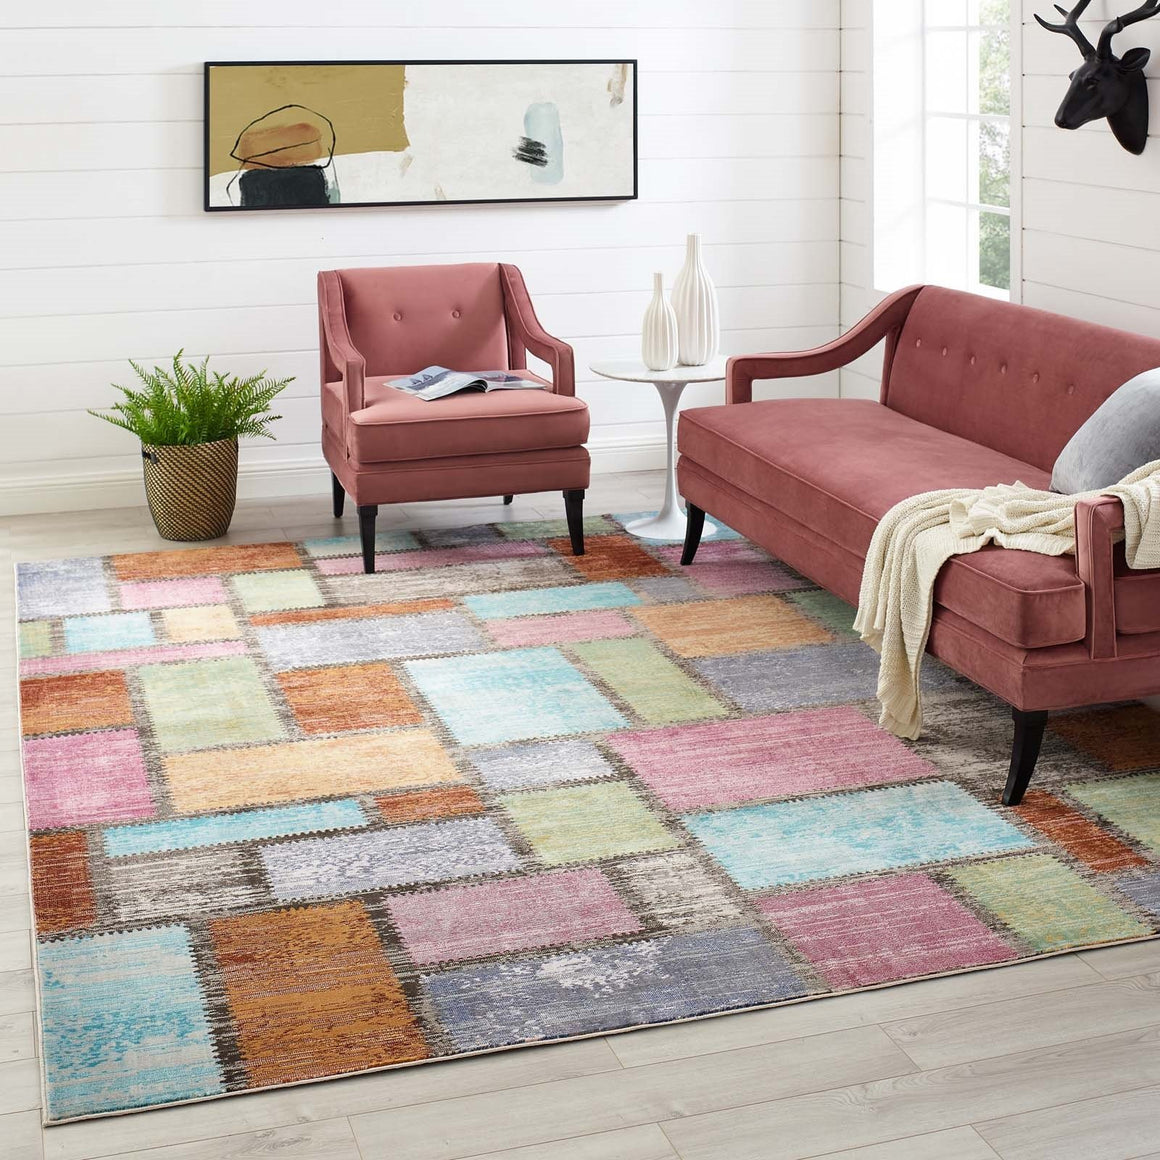 Success Nyssa Abstract Geometric Mosaic Area Rug in Multicolored - taylor ray decor